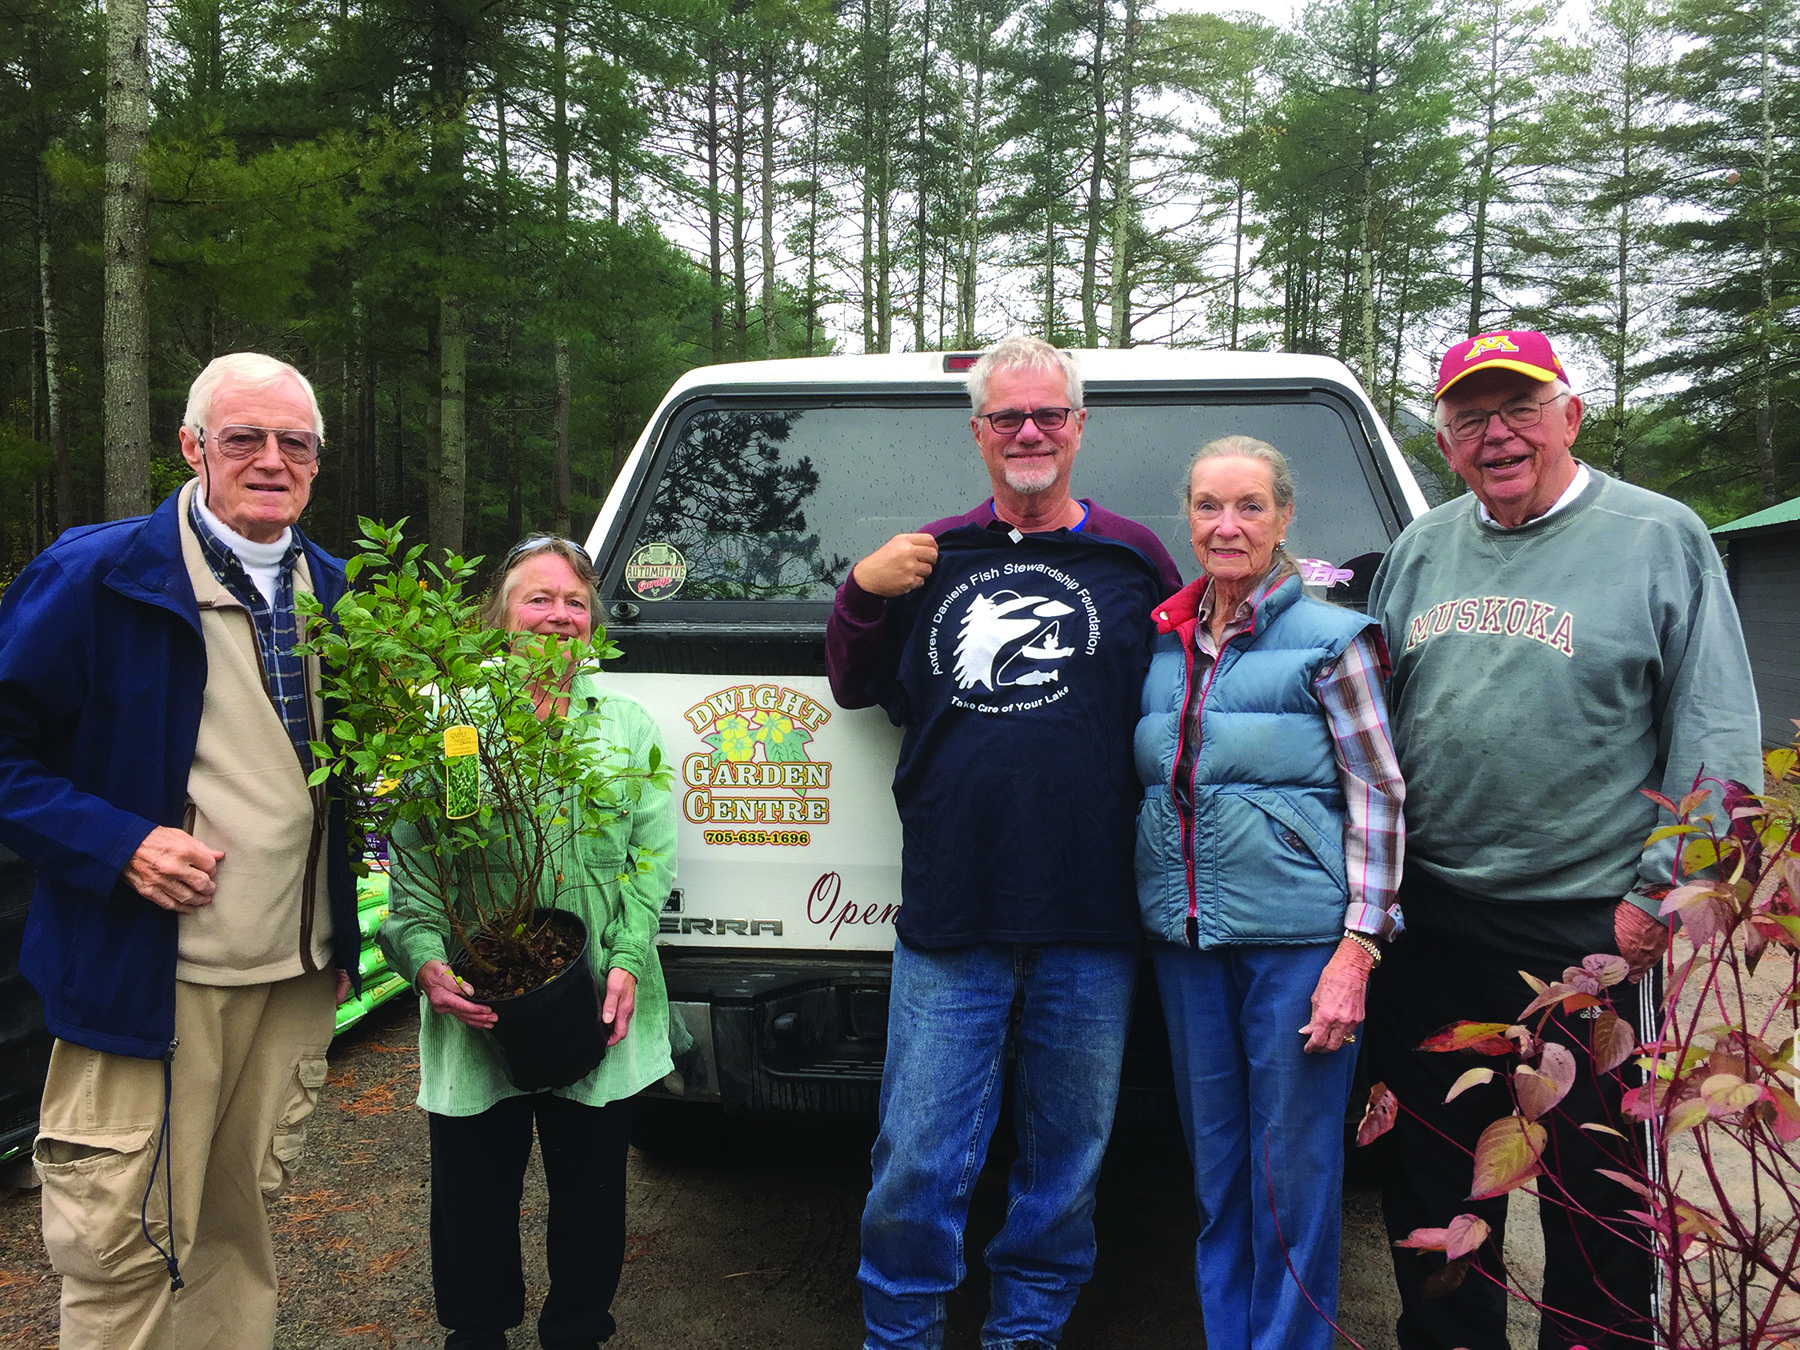 George Daniels, Daphne Curtis, Dennis Rolland, Cathy Nystrom and Andy Montgomery obtaining native plants from Dwight Garden Centre.